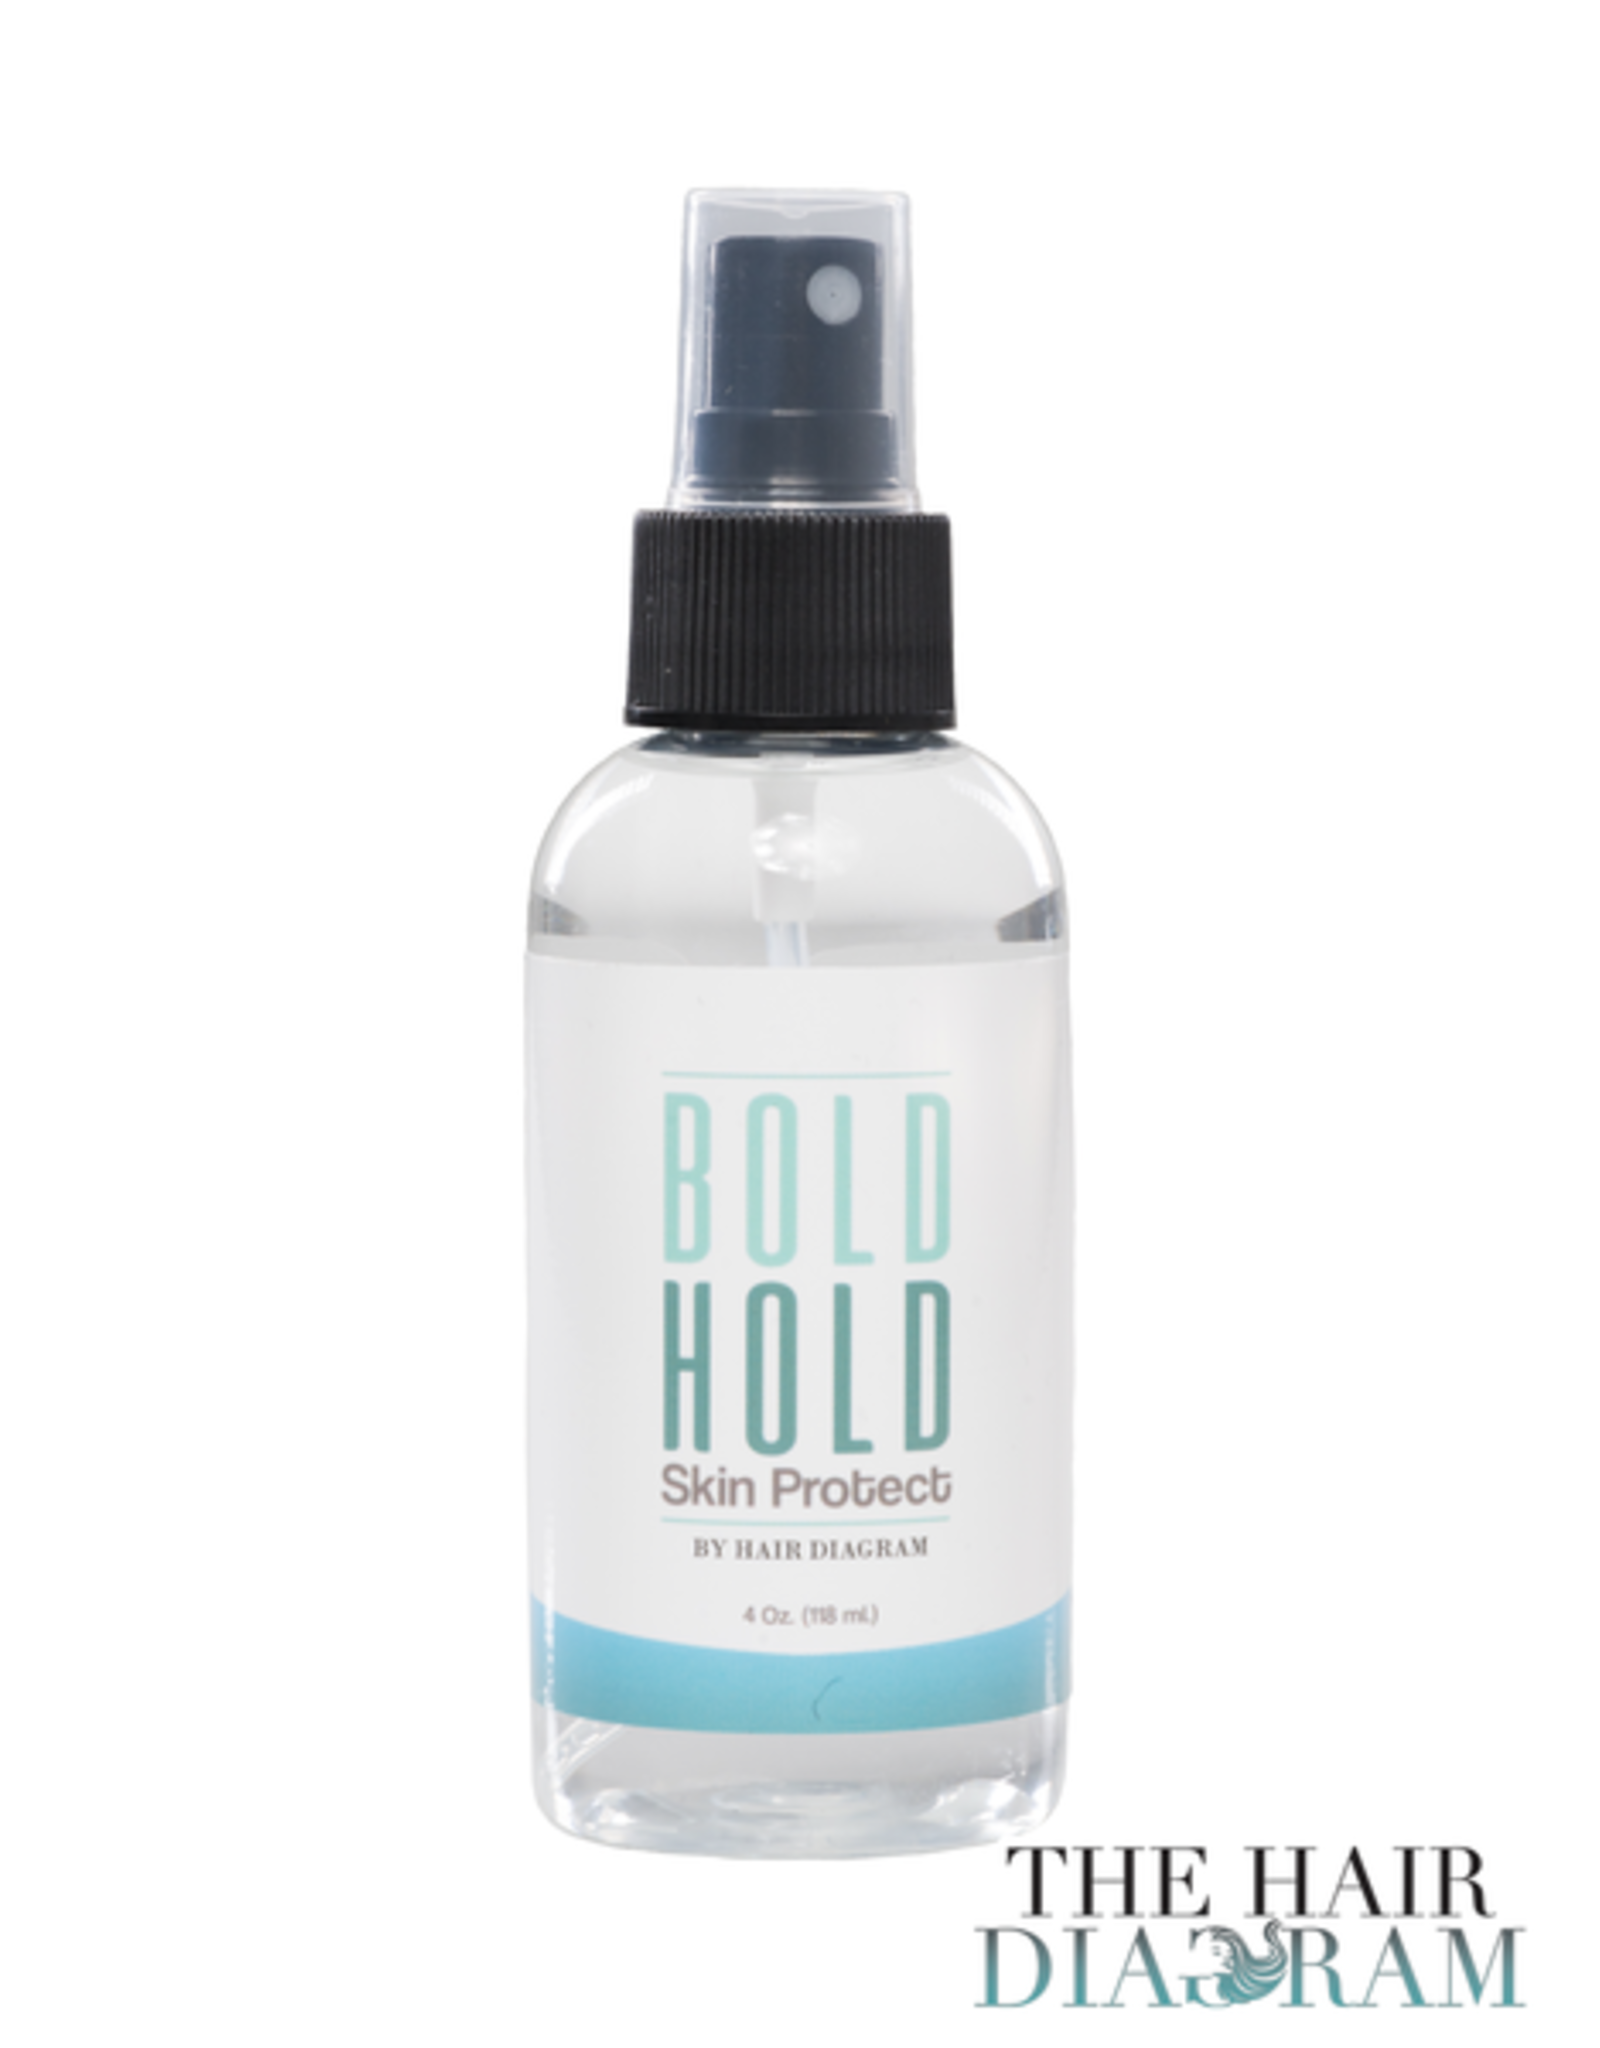 The Hair Diagram Bold Hold Skin Protect